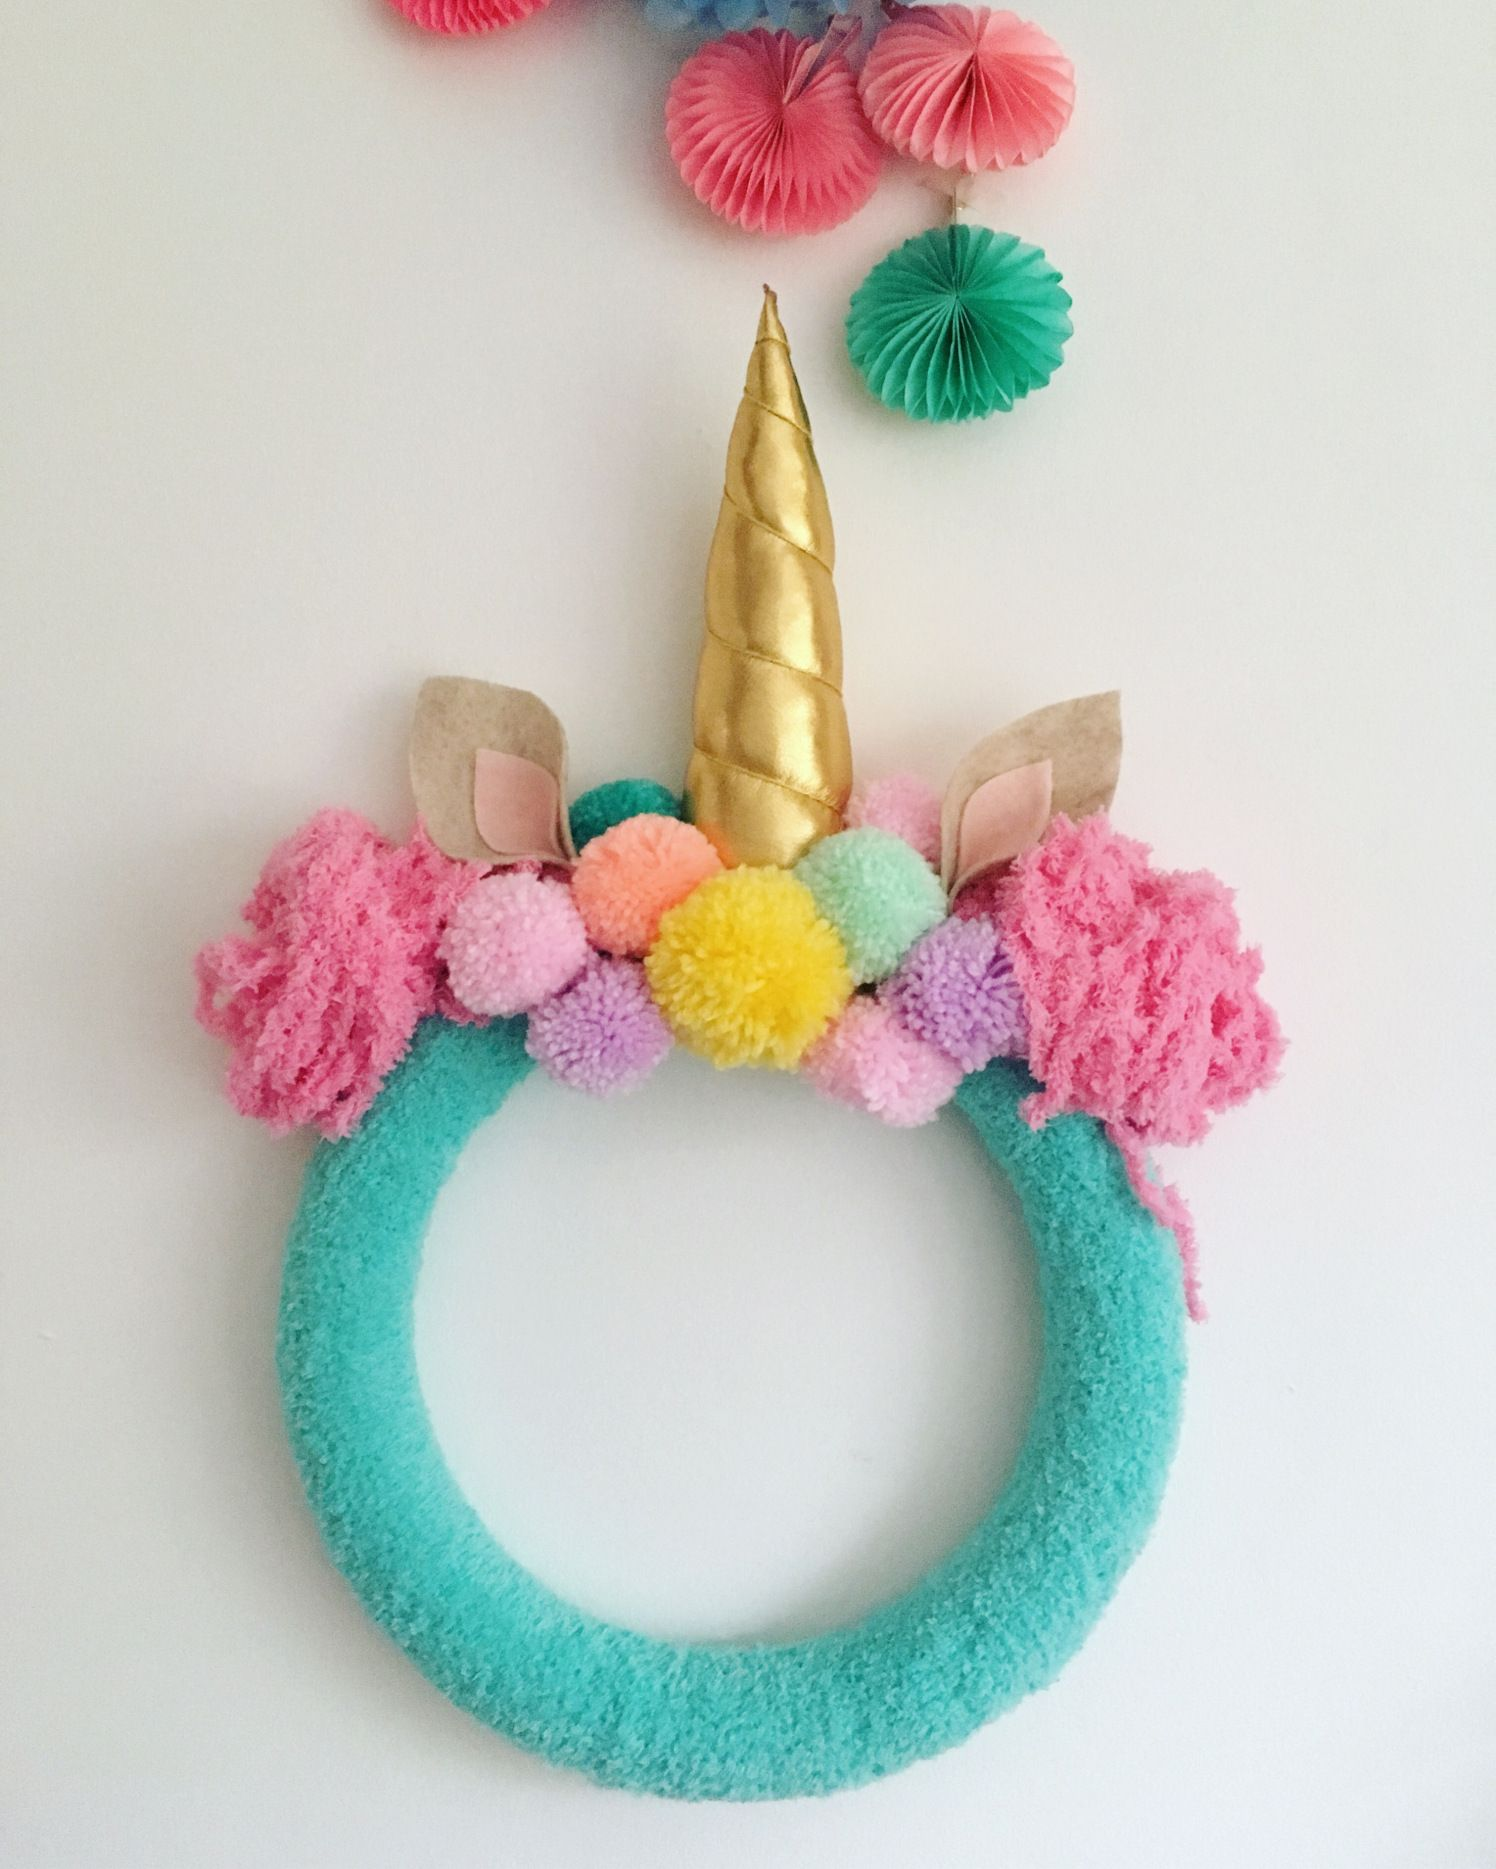 DIY Unicorn Wreath #unicorncrafts